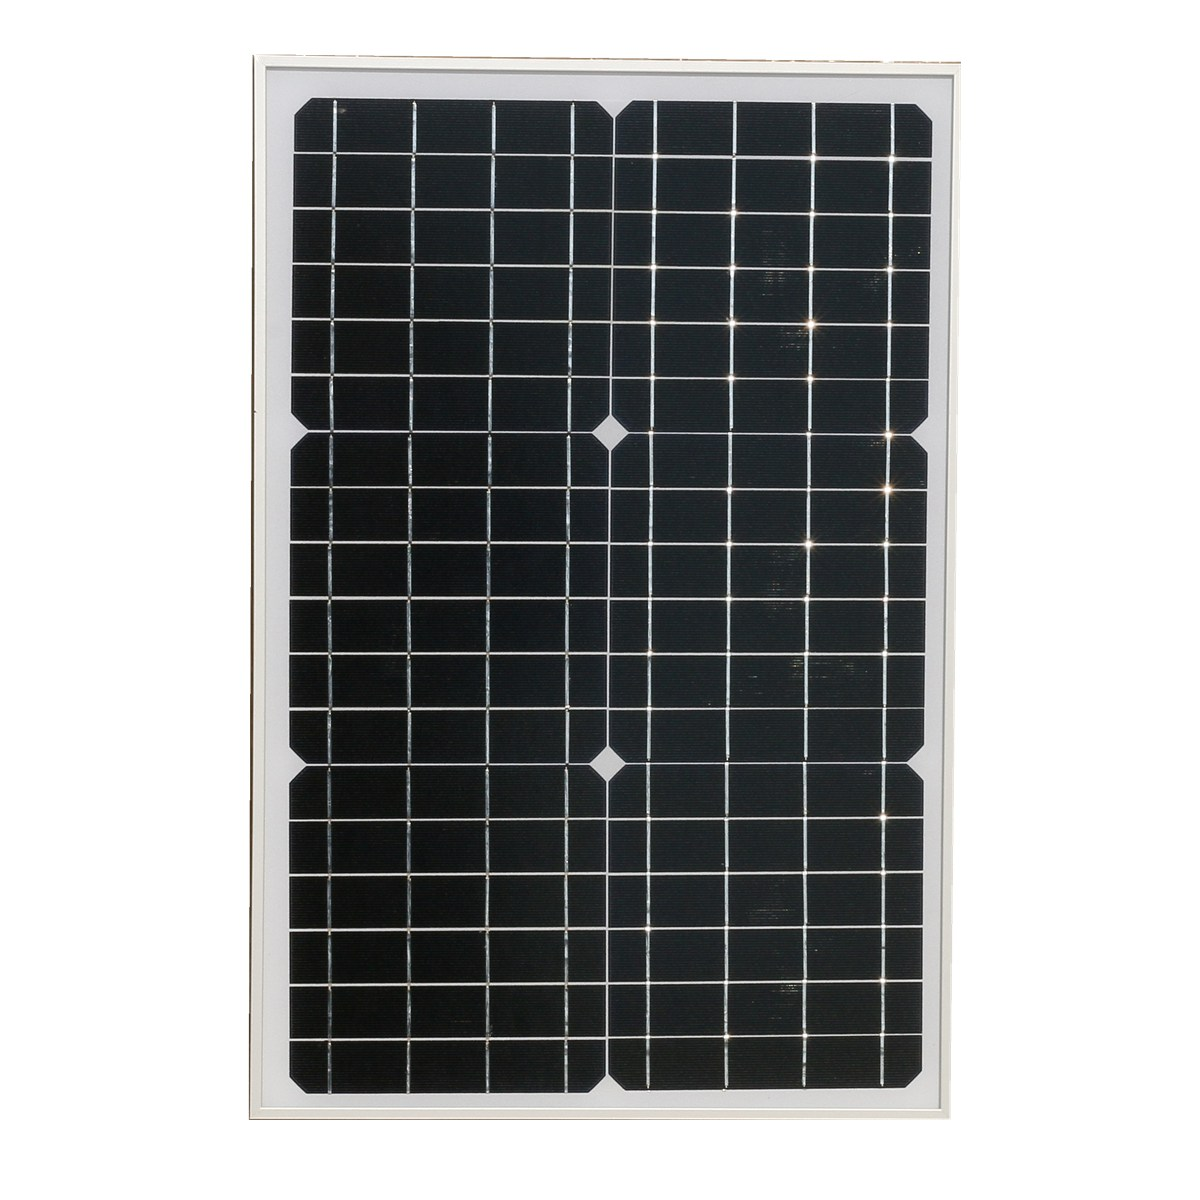 KINCO 25W 18V Monocrystalline Silicon Solar Panels High Conversion Rate DIY Steady Solar Panel For Car Battery RT Boat sp 36 120w 12v semi flexible monocrystalline solar panel waterproof high conversion efficiency for rv boat car 1 5m cable